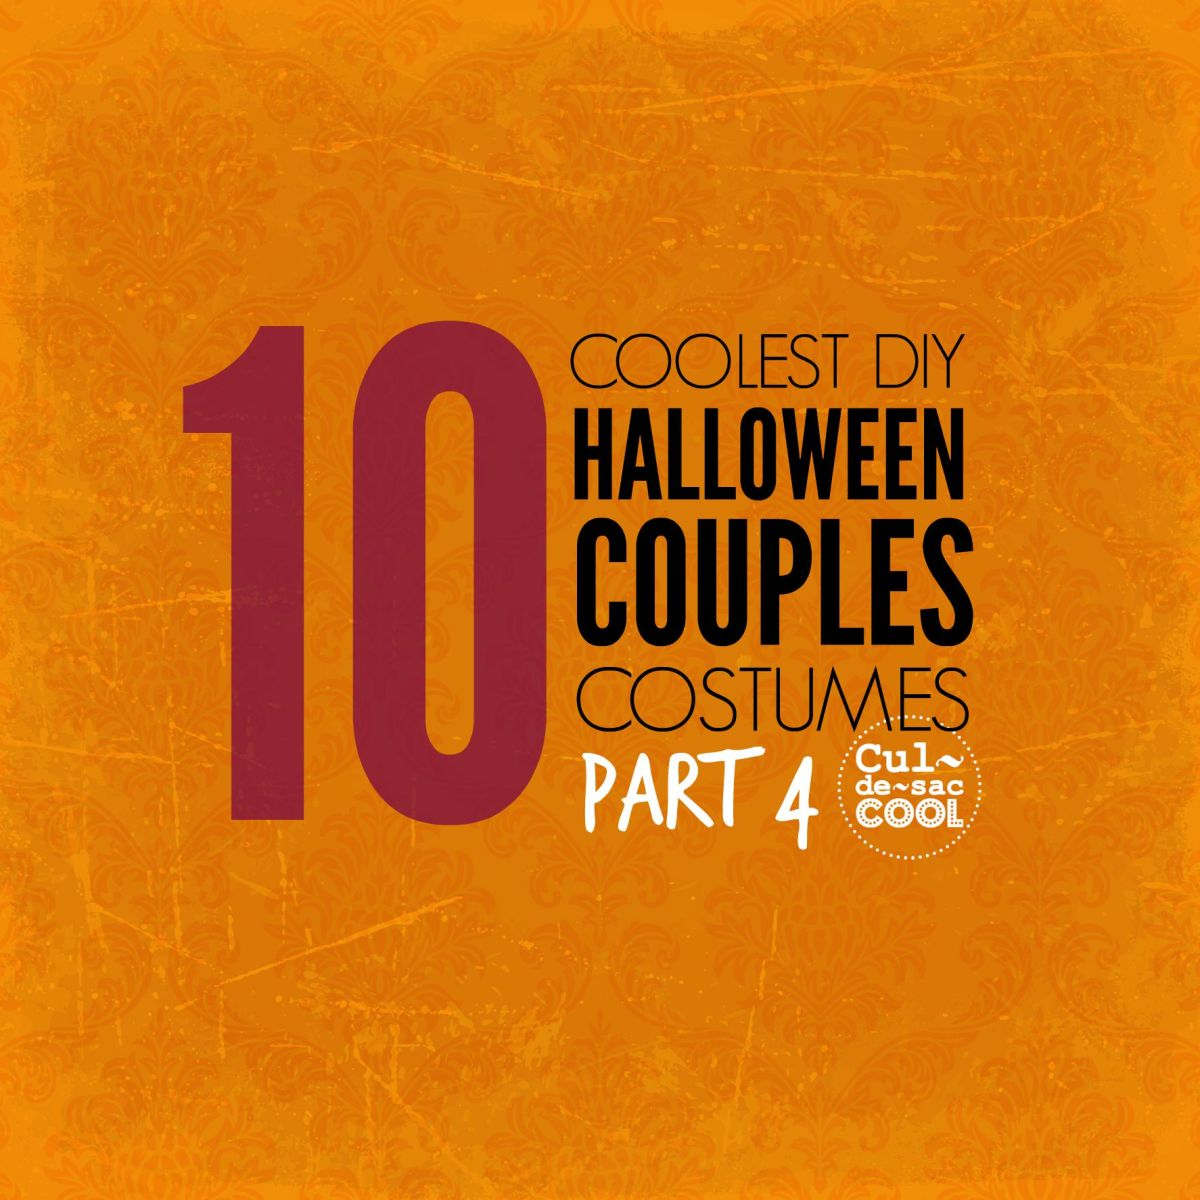 10 Coolest DIY Halloween Couples Costumes -- Part 4